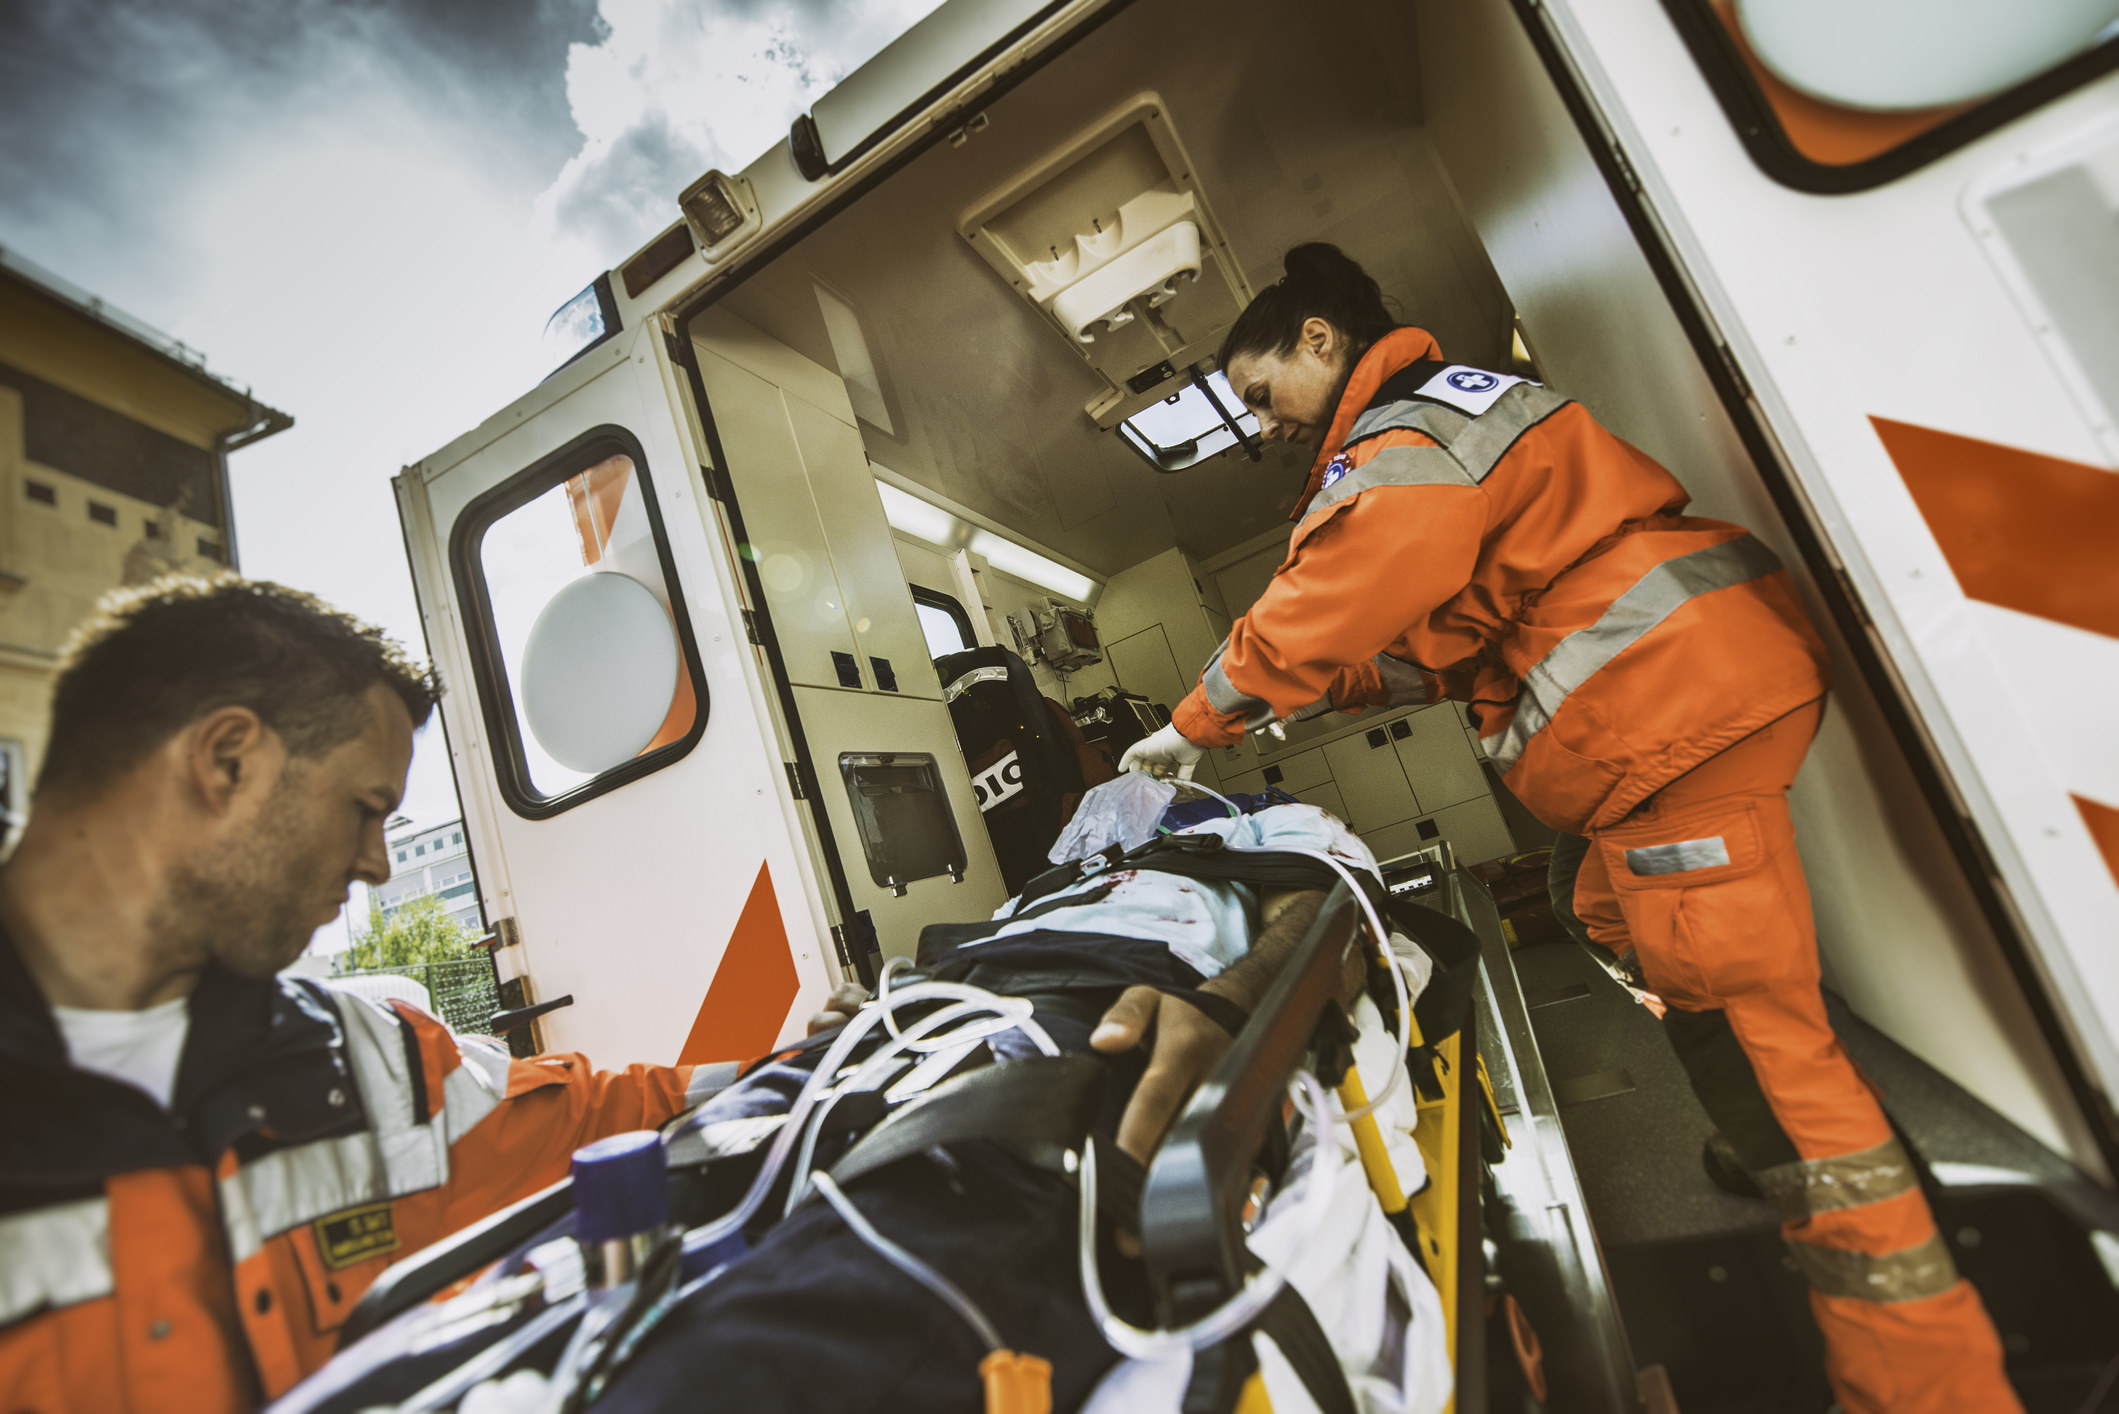 EMS workers loading a patient into an ambulance